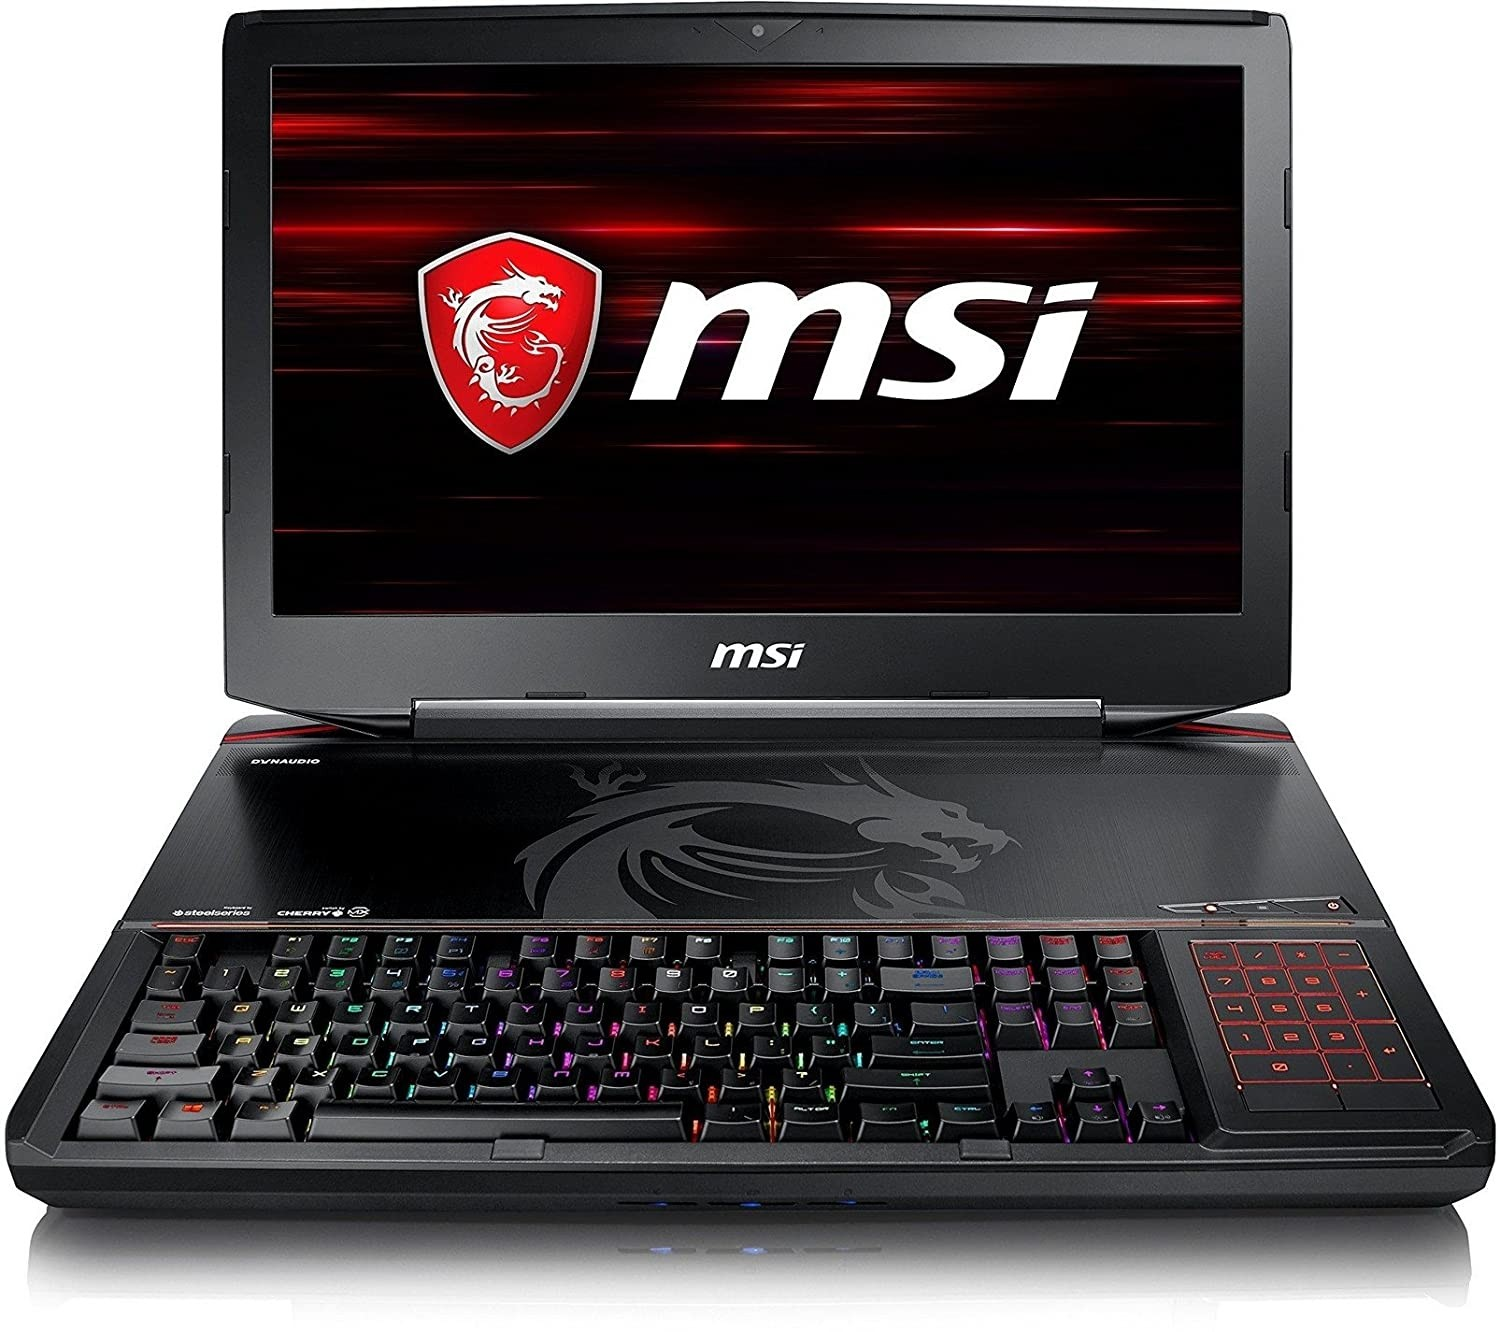 Refurbished laptops & desktops - MSI Gaming MSI GT83 8RG-007IN 2018 18.4-inch Laptop (8th Gen Core i7-8850H/32GB/1TB/512GB SSD/Windows 10/8GB Graphics), Black